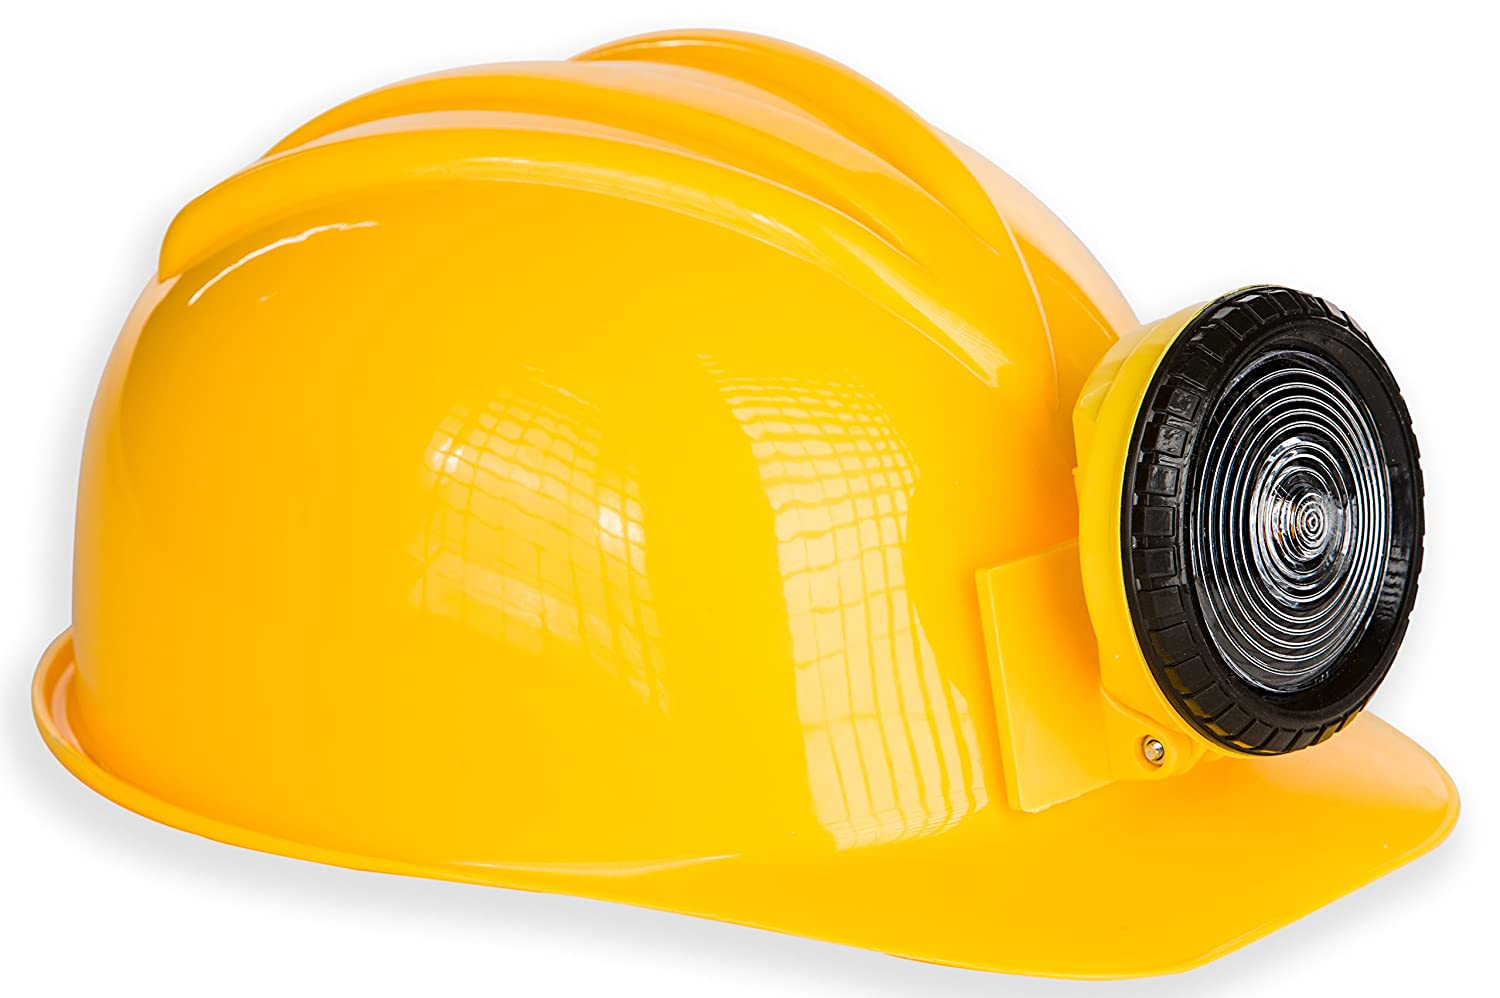 Kangaroo Adult or Kids Adjustable Construction Miner Hard Hat with Light KM-10019-160